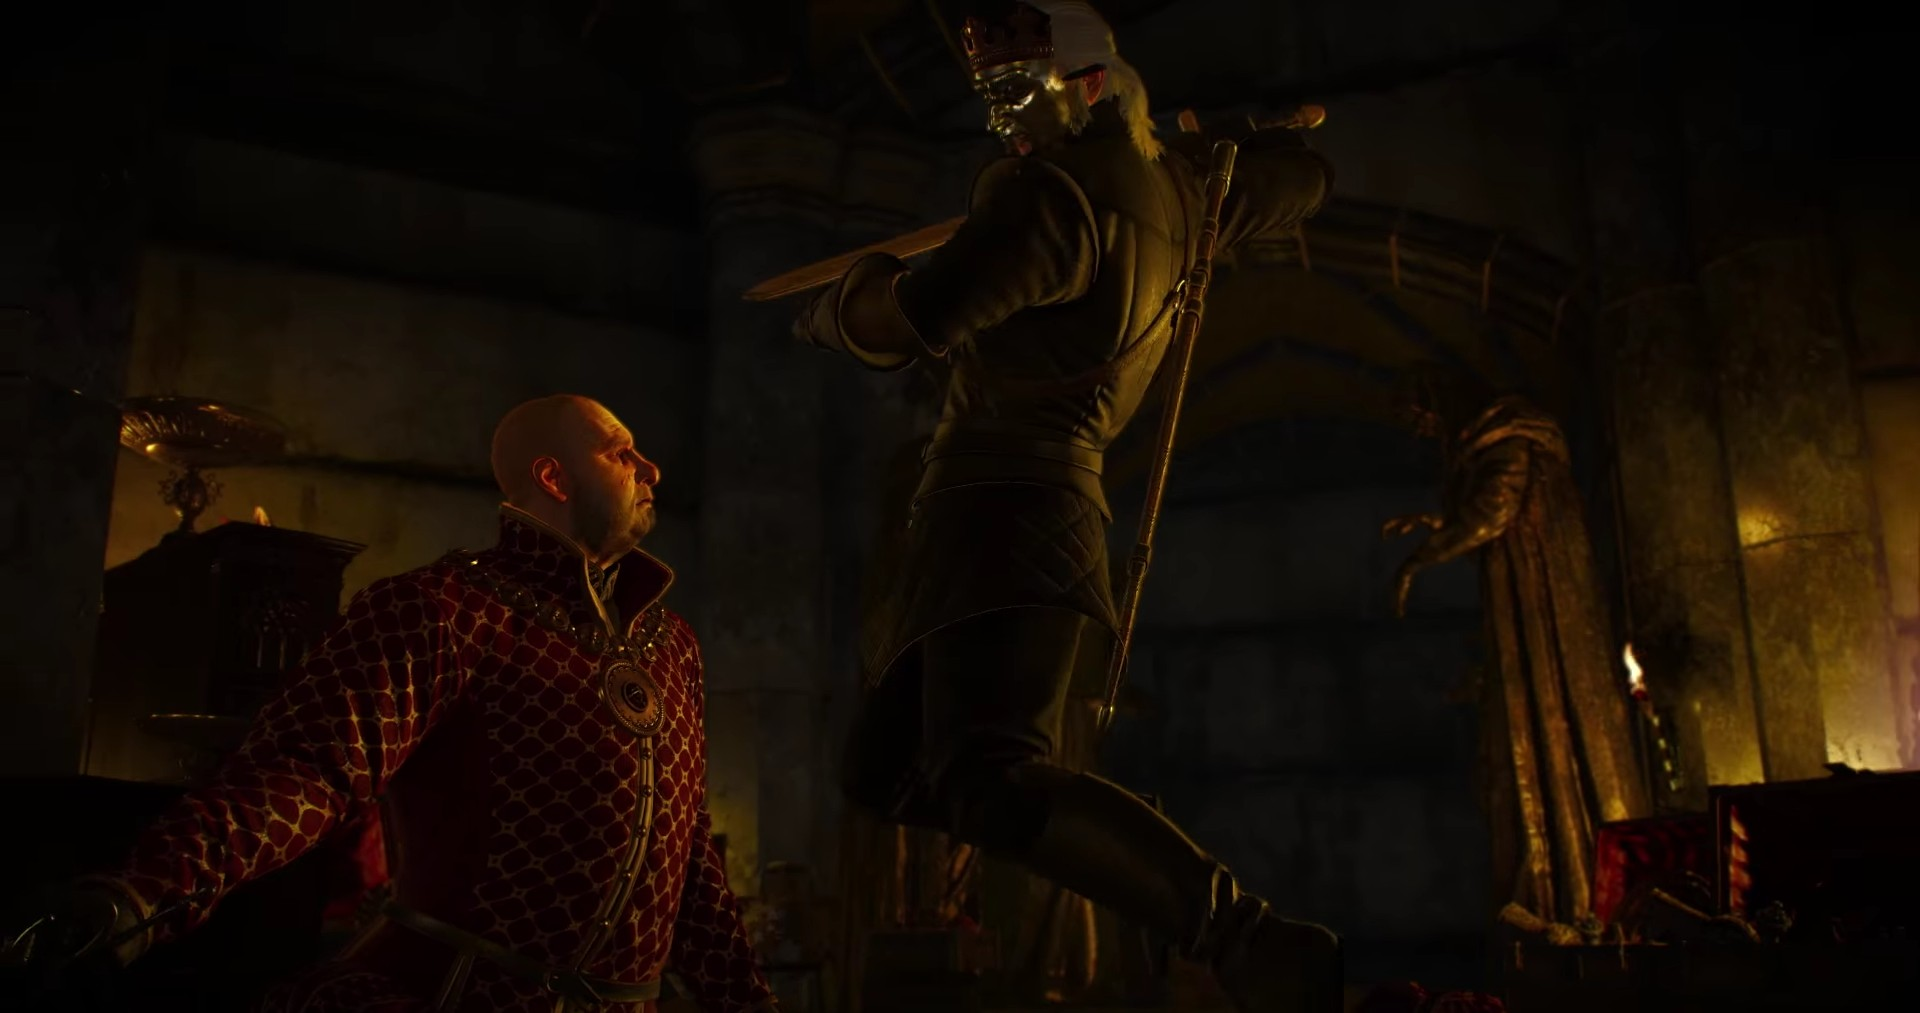 the-witcher-3-wild-hunt-game-of-the-year-trailer-1-gamesoul